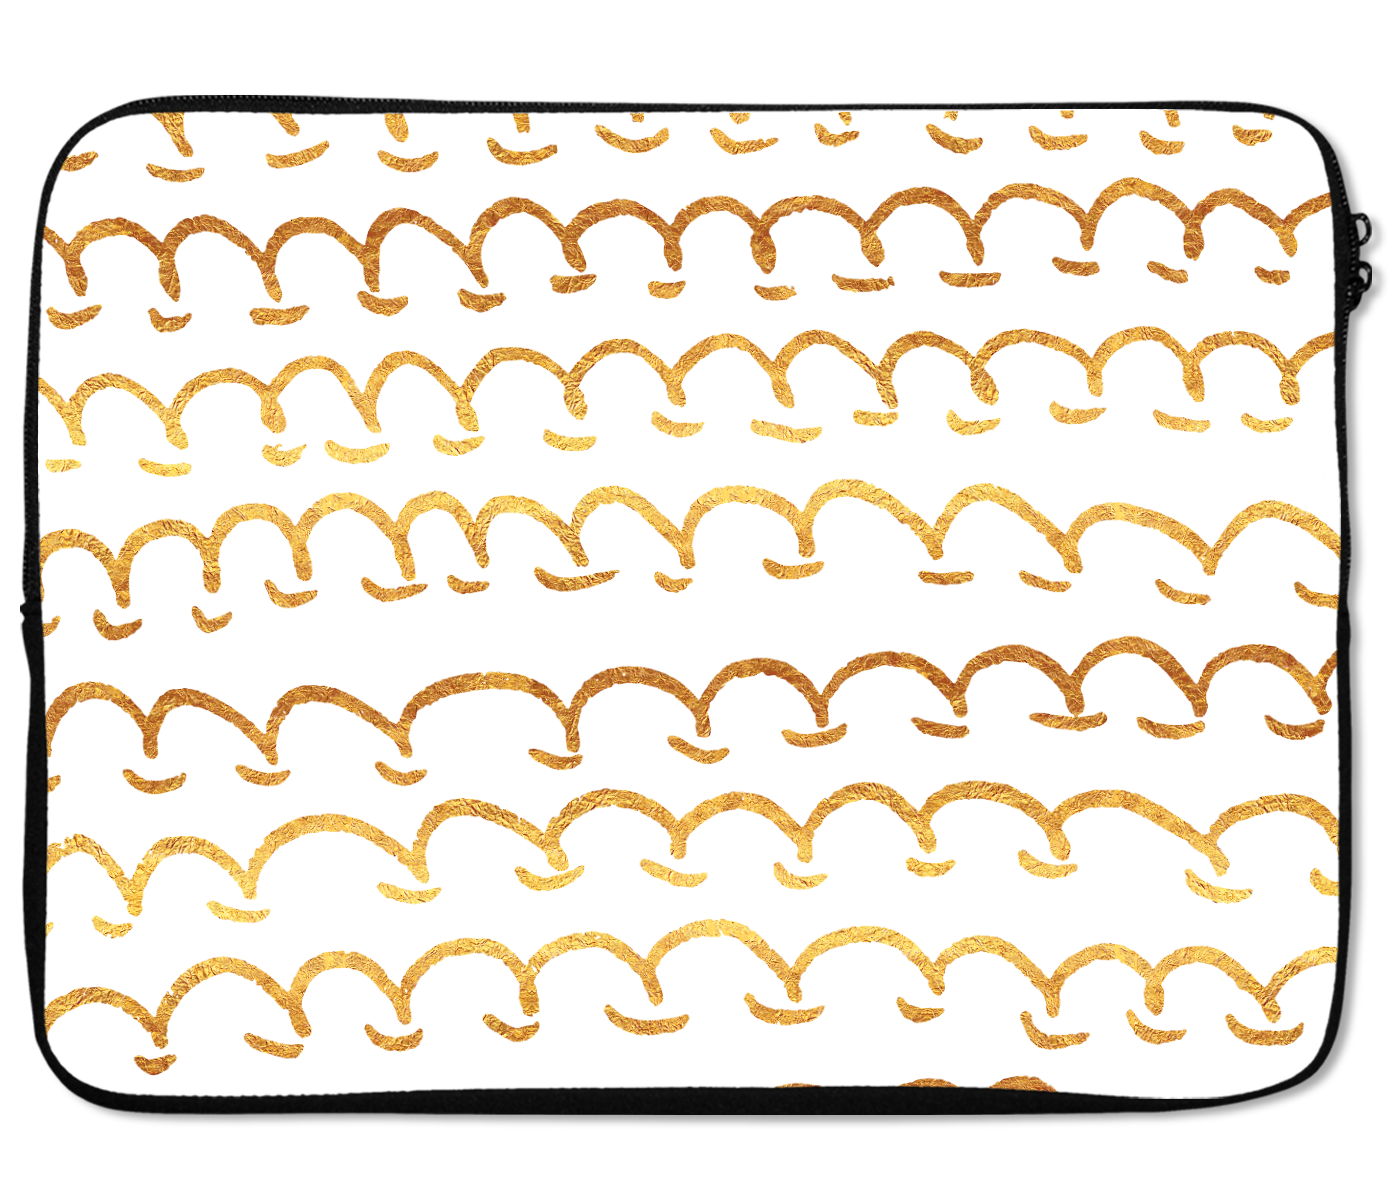 Laptops Tablet Sleeves Golden Waves Pattern Premium Quality Neoprene Laptop Protection